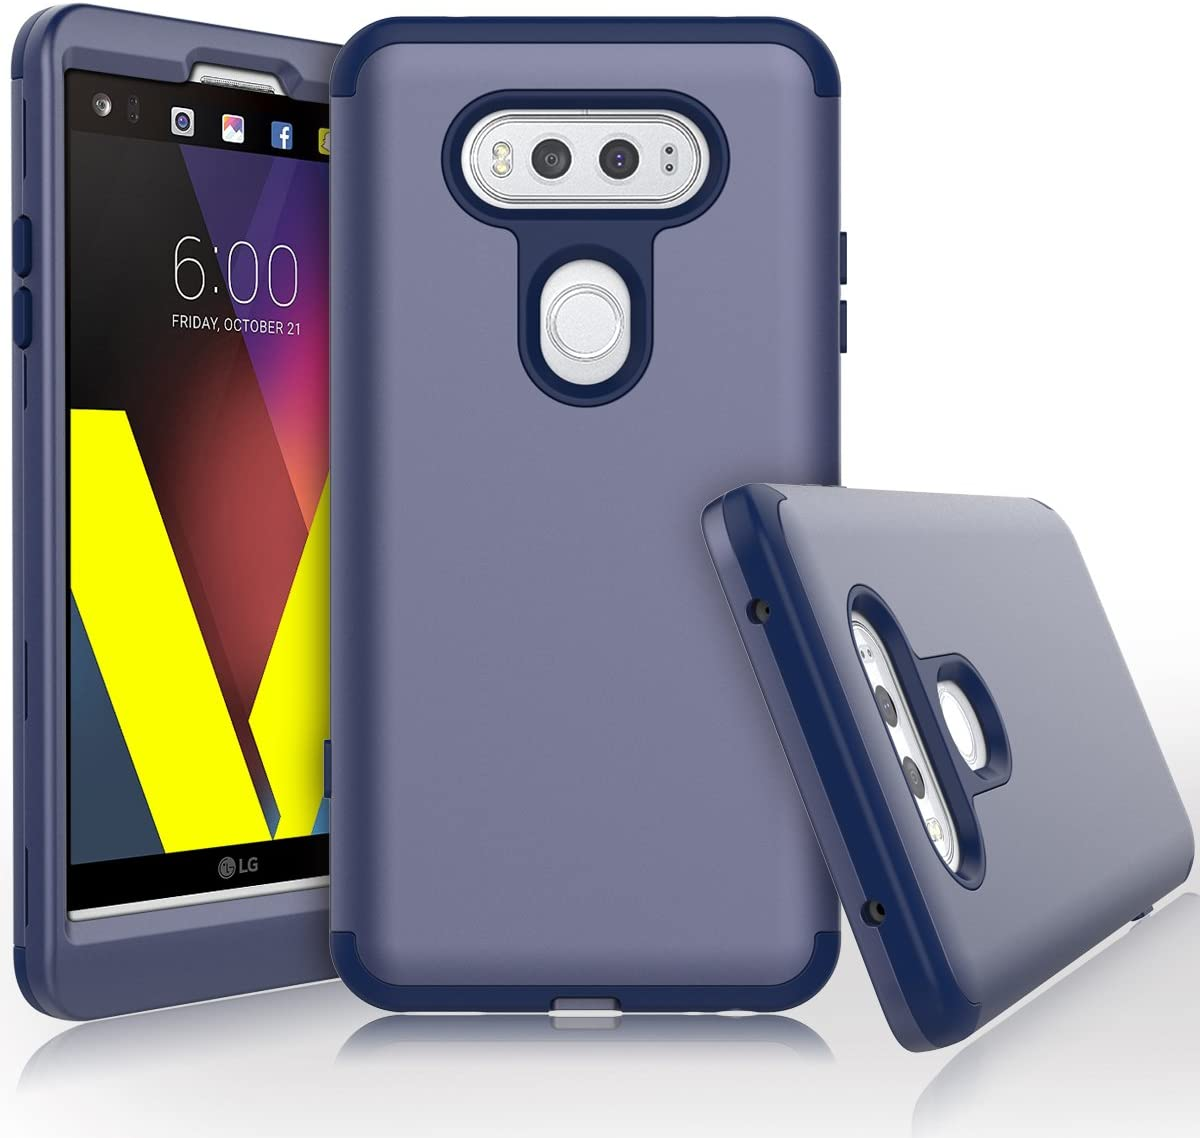 LG V20 Case, WeLoveCase Heavy Duty High Impact Defense Shield Hard PC Outer Shell with Inner Soft Rubber Hybrid 3 in 1 Combo Full-Body Armor Protective Case for LG V20 Navy Blue